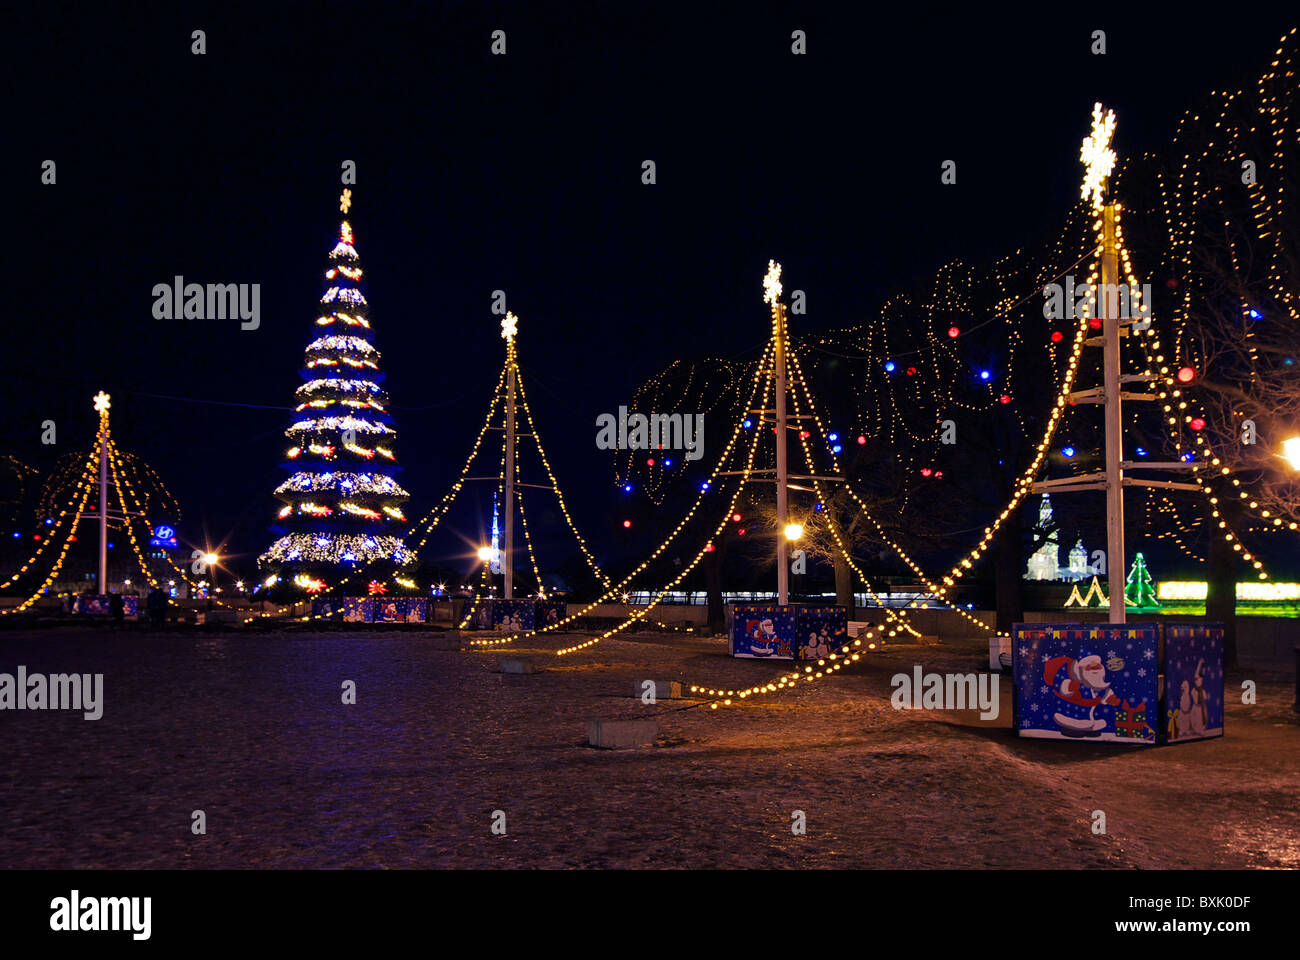 Night illumination for the New Year - Stock Image